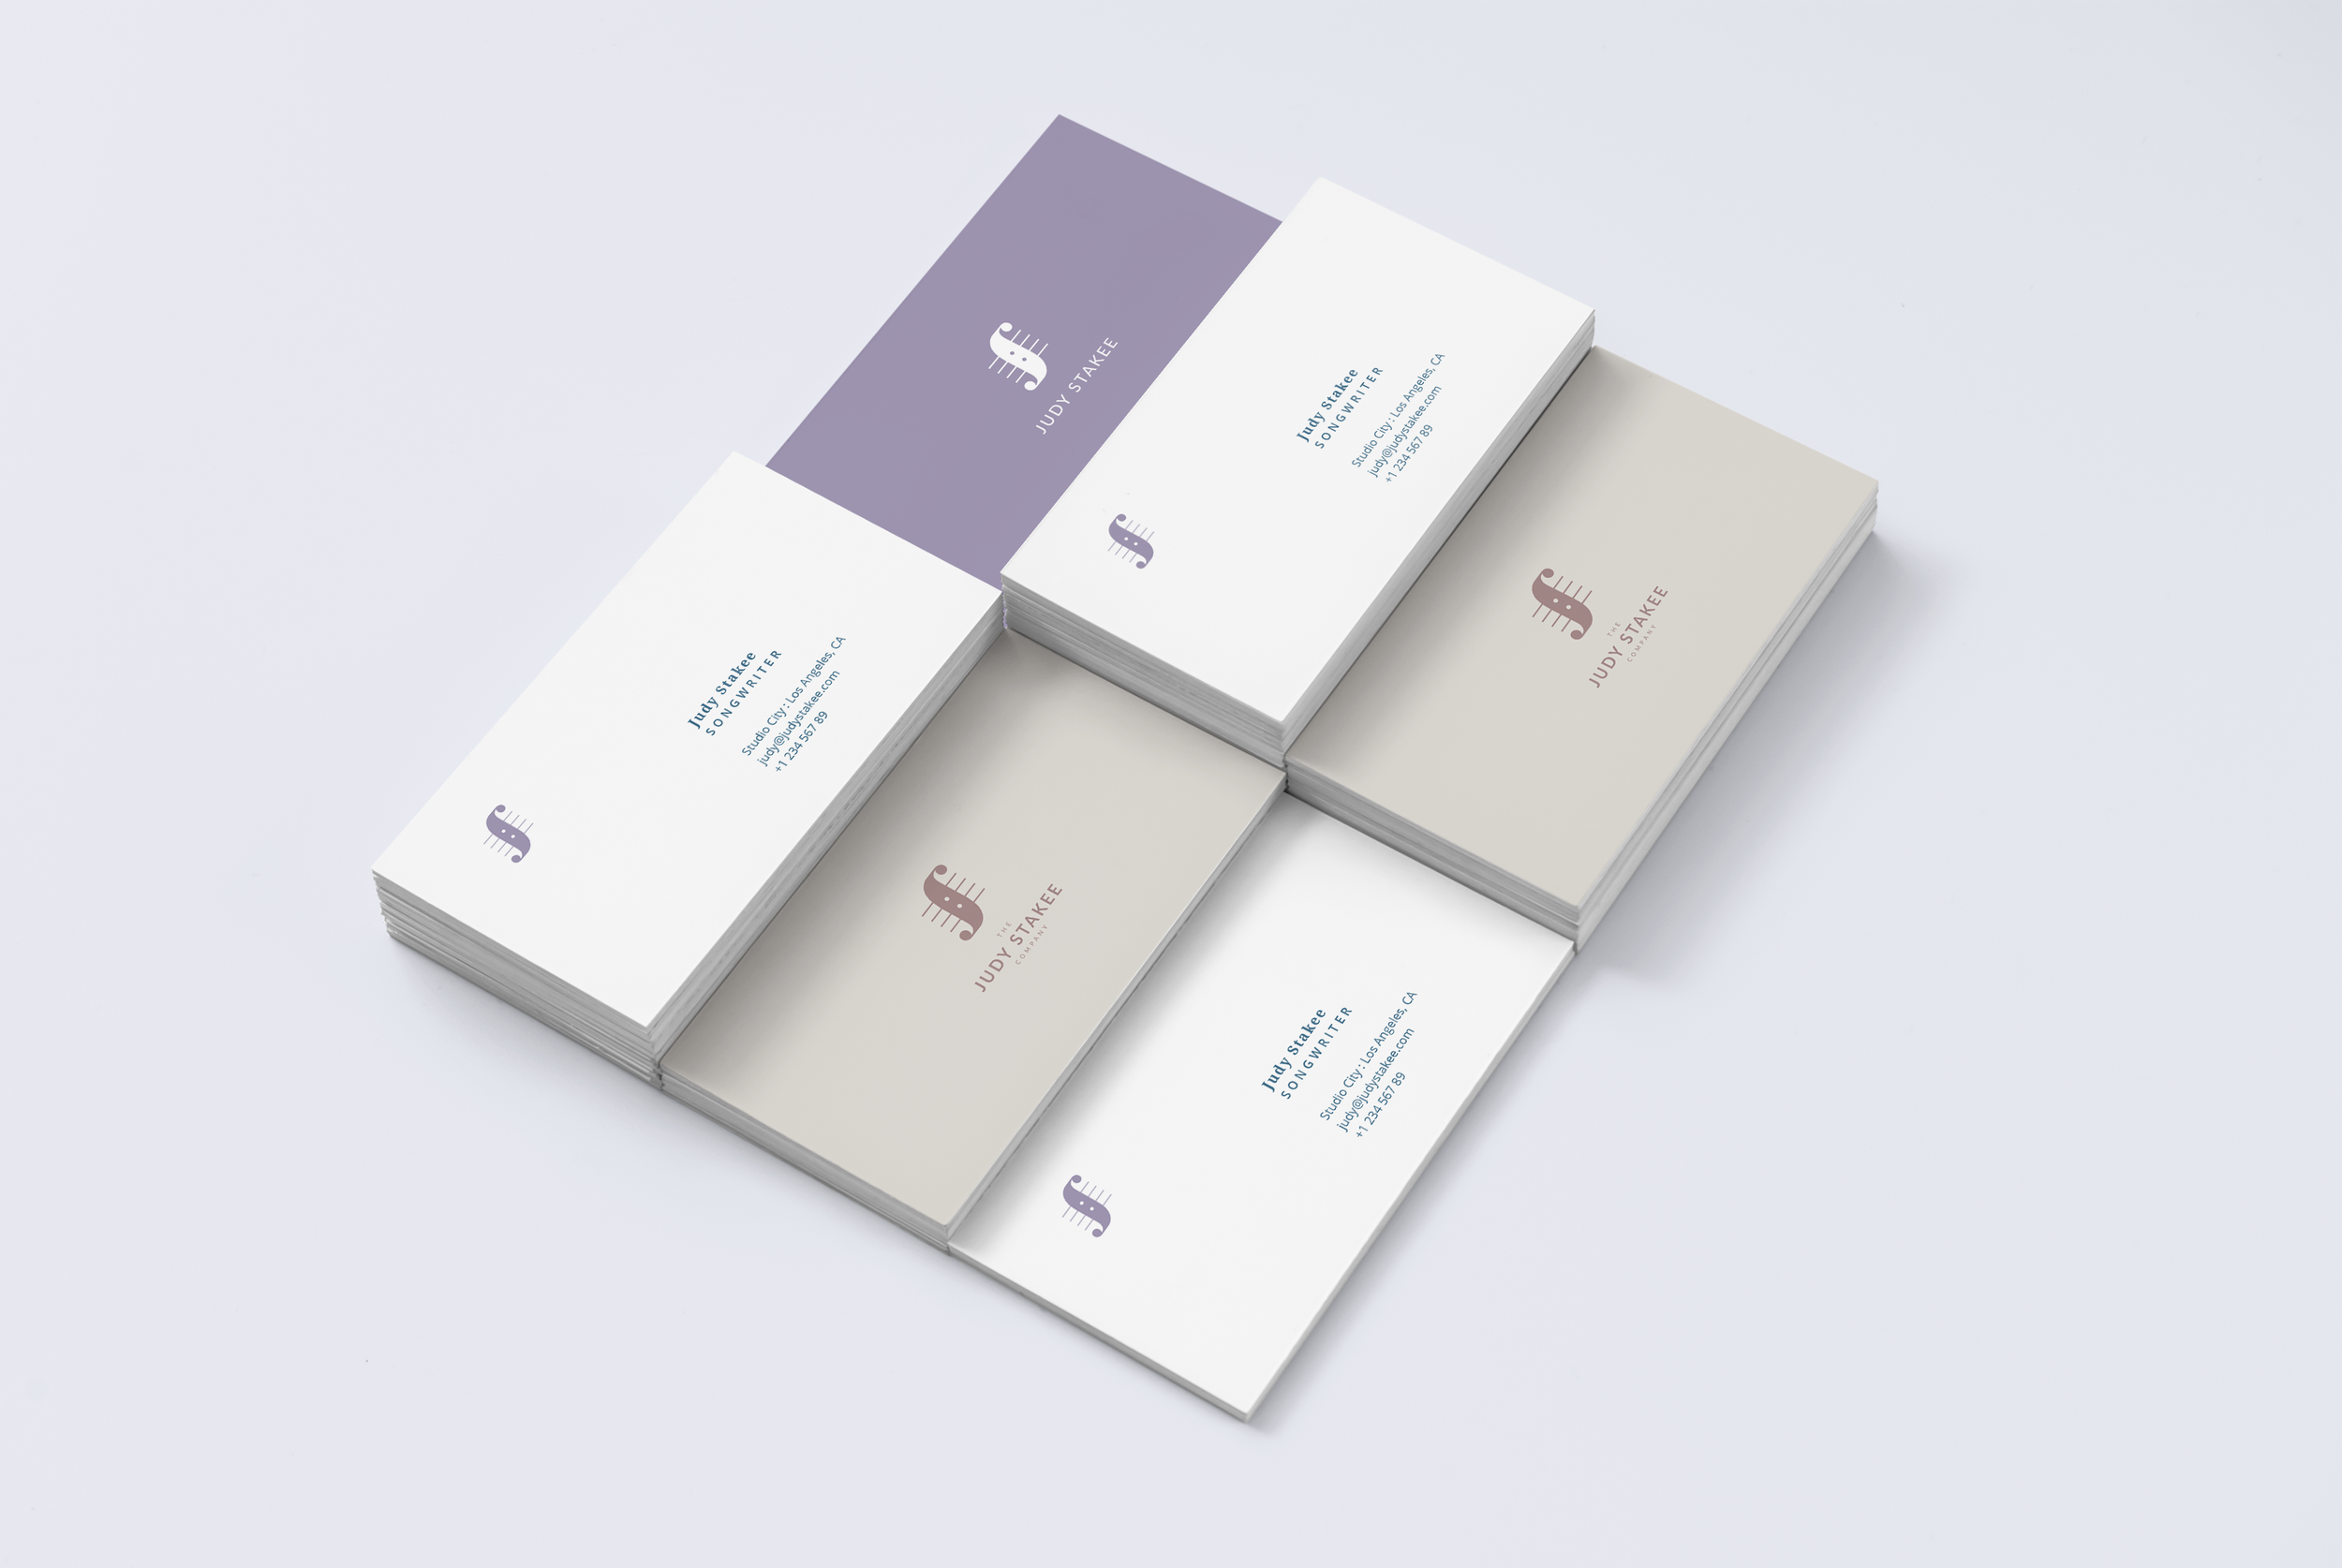 judy-stakee-brand-identity-11.png